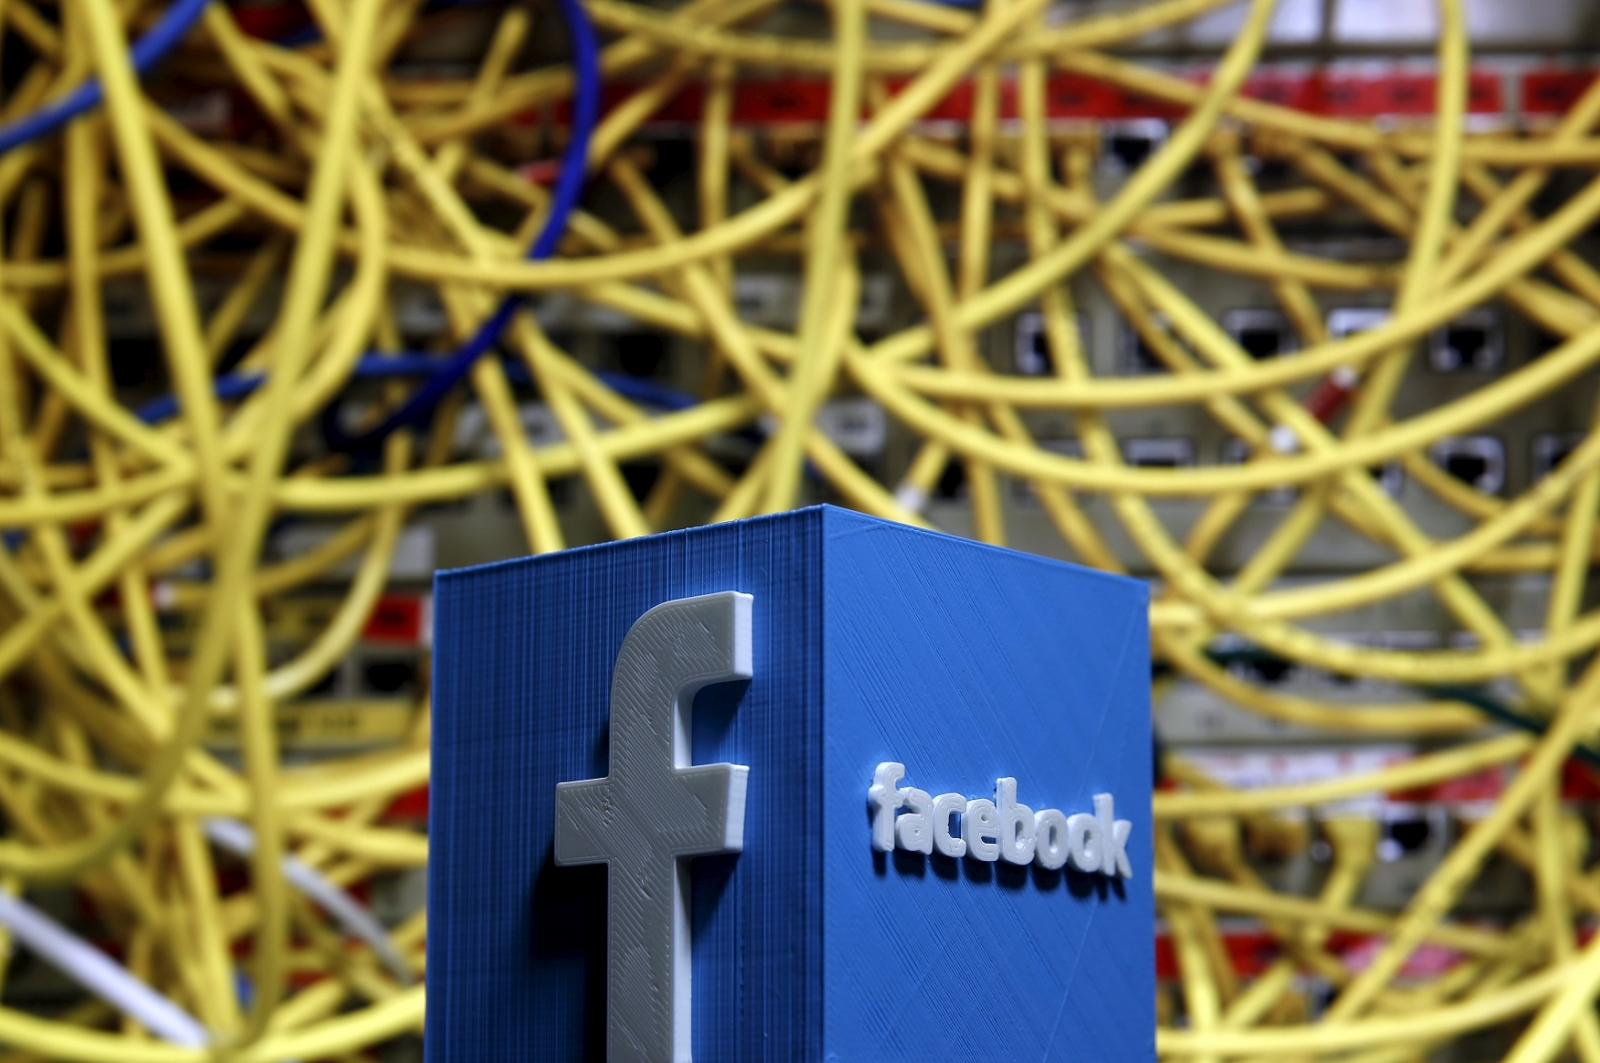 Facebook security privacy settings hacker